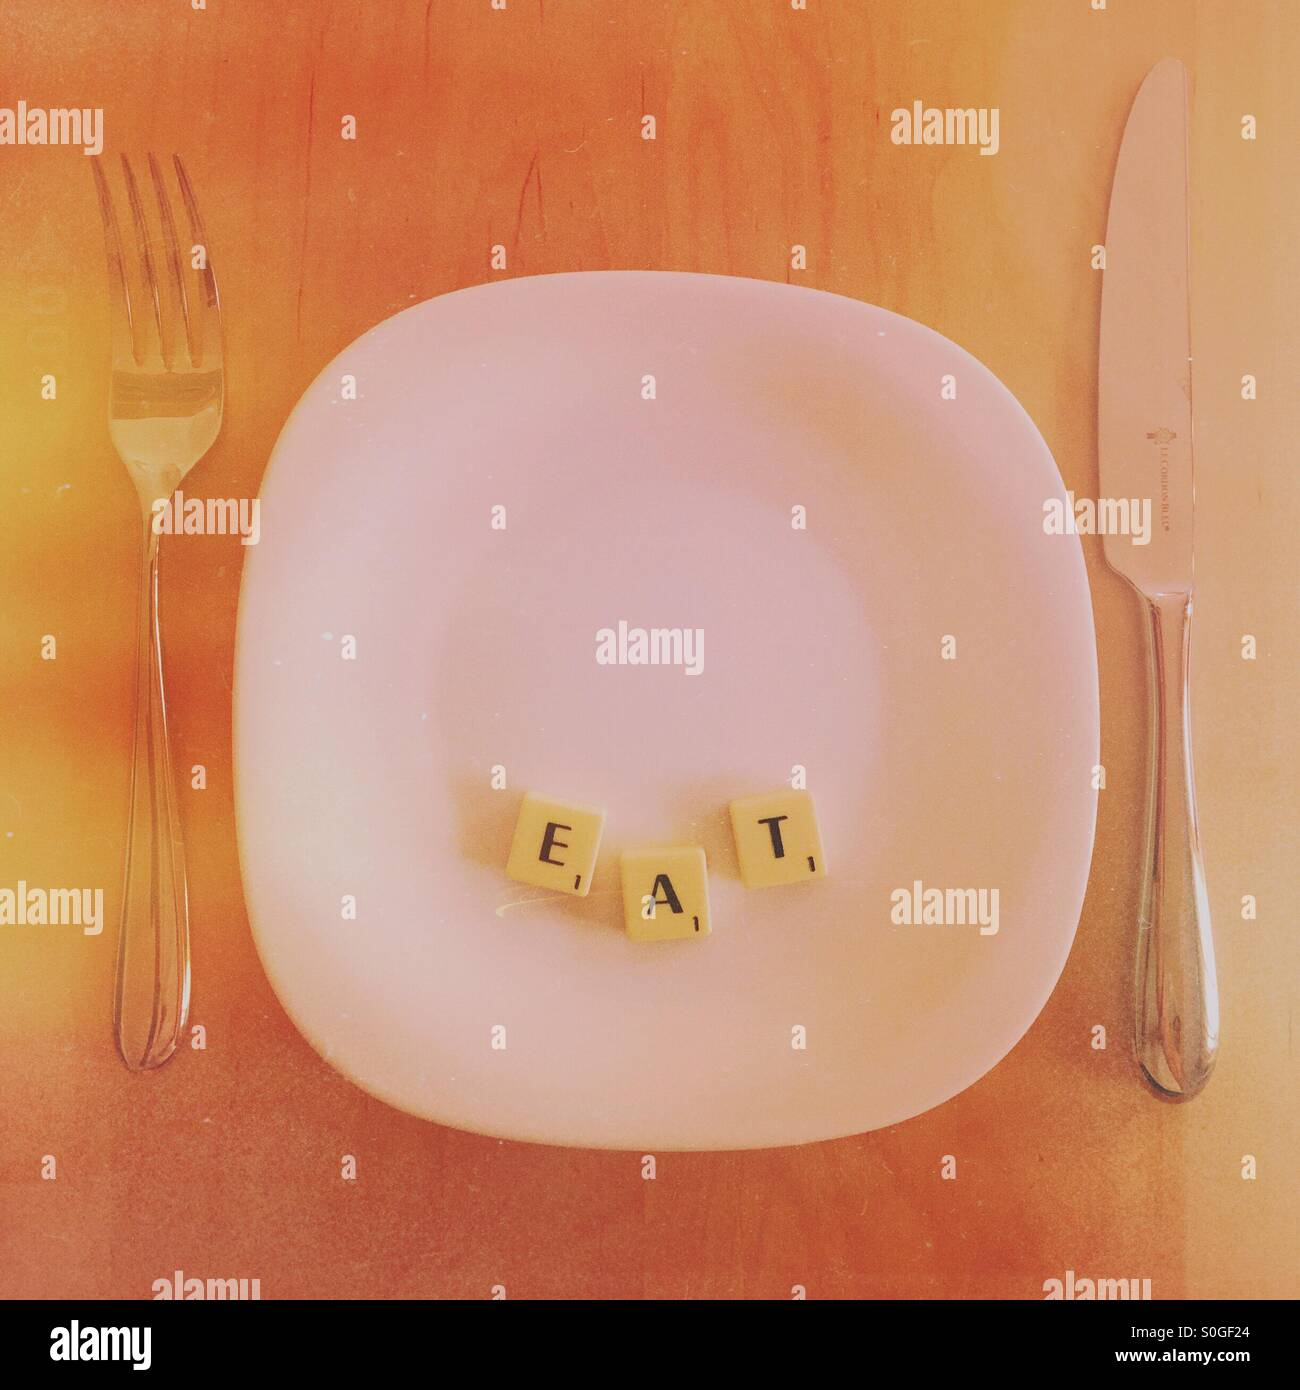 Plate with scrabble word EAT - Stock Image